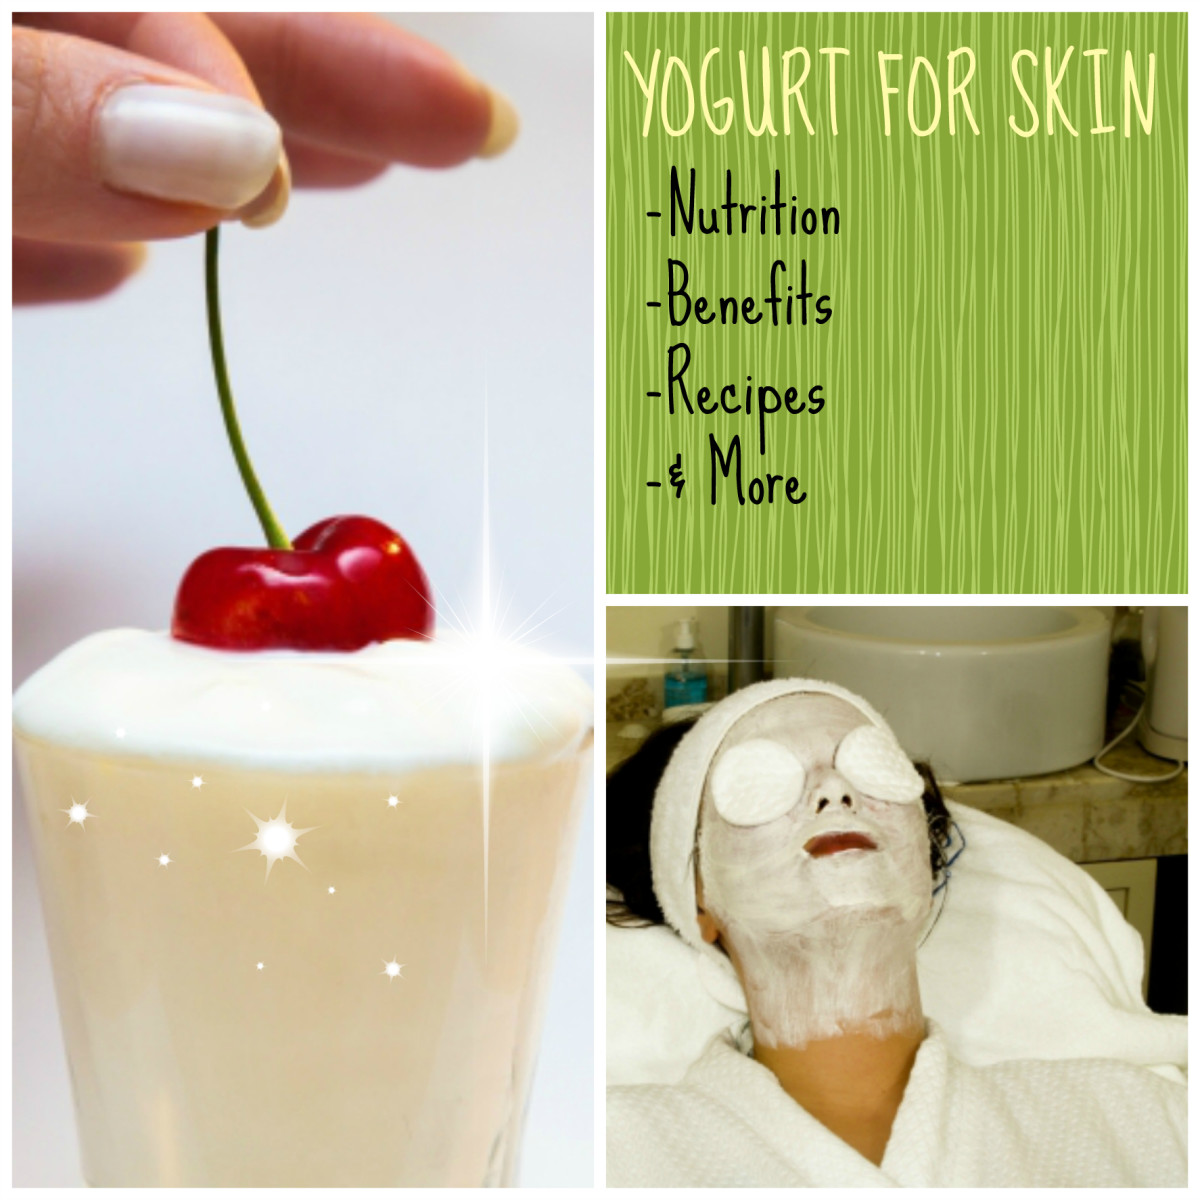 Yogurt for Skin | Powerful Nutrients in Yogurt for Glowing ...